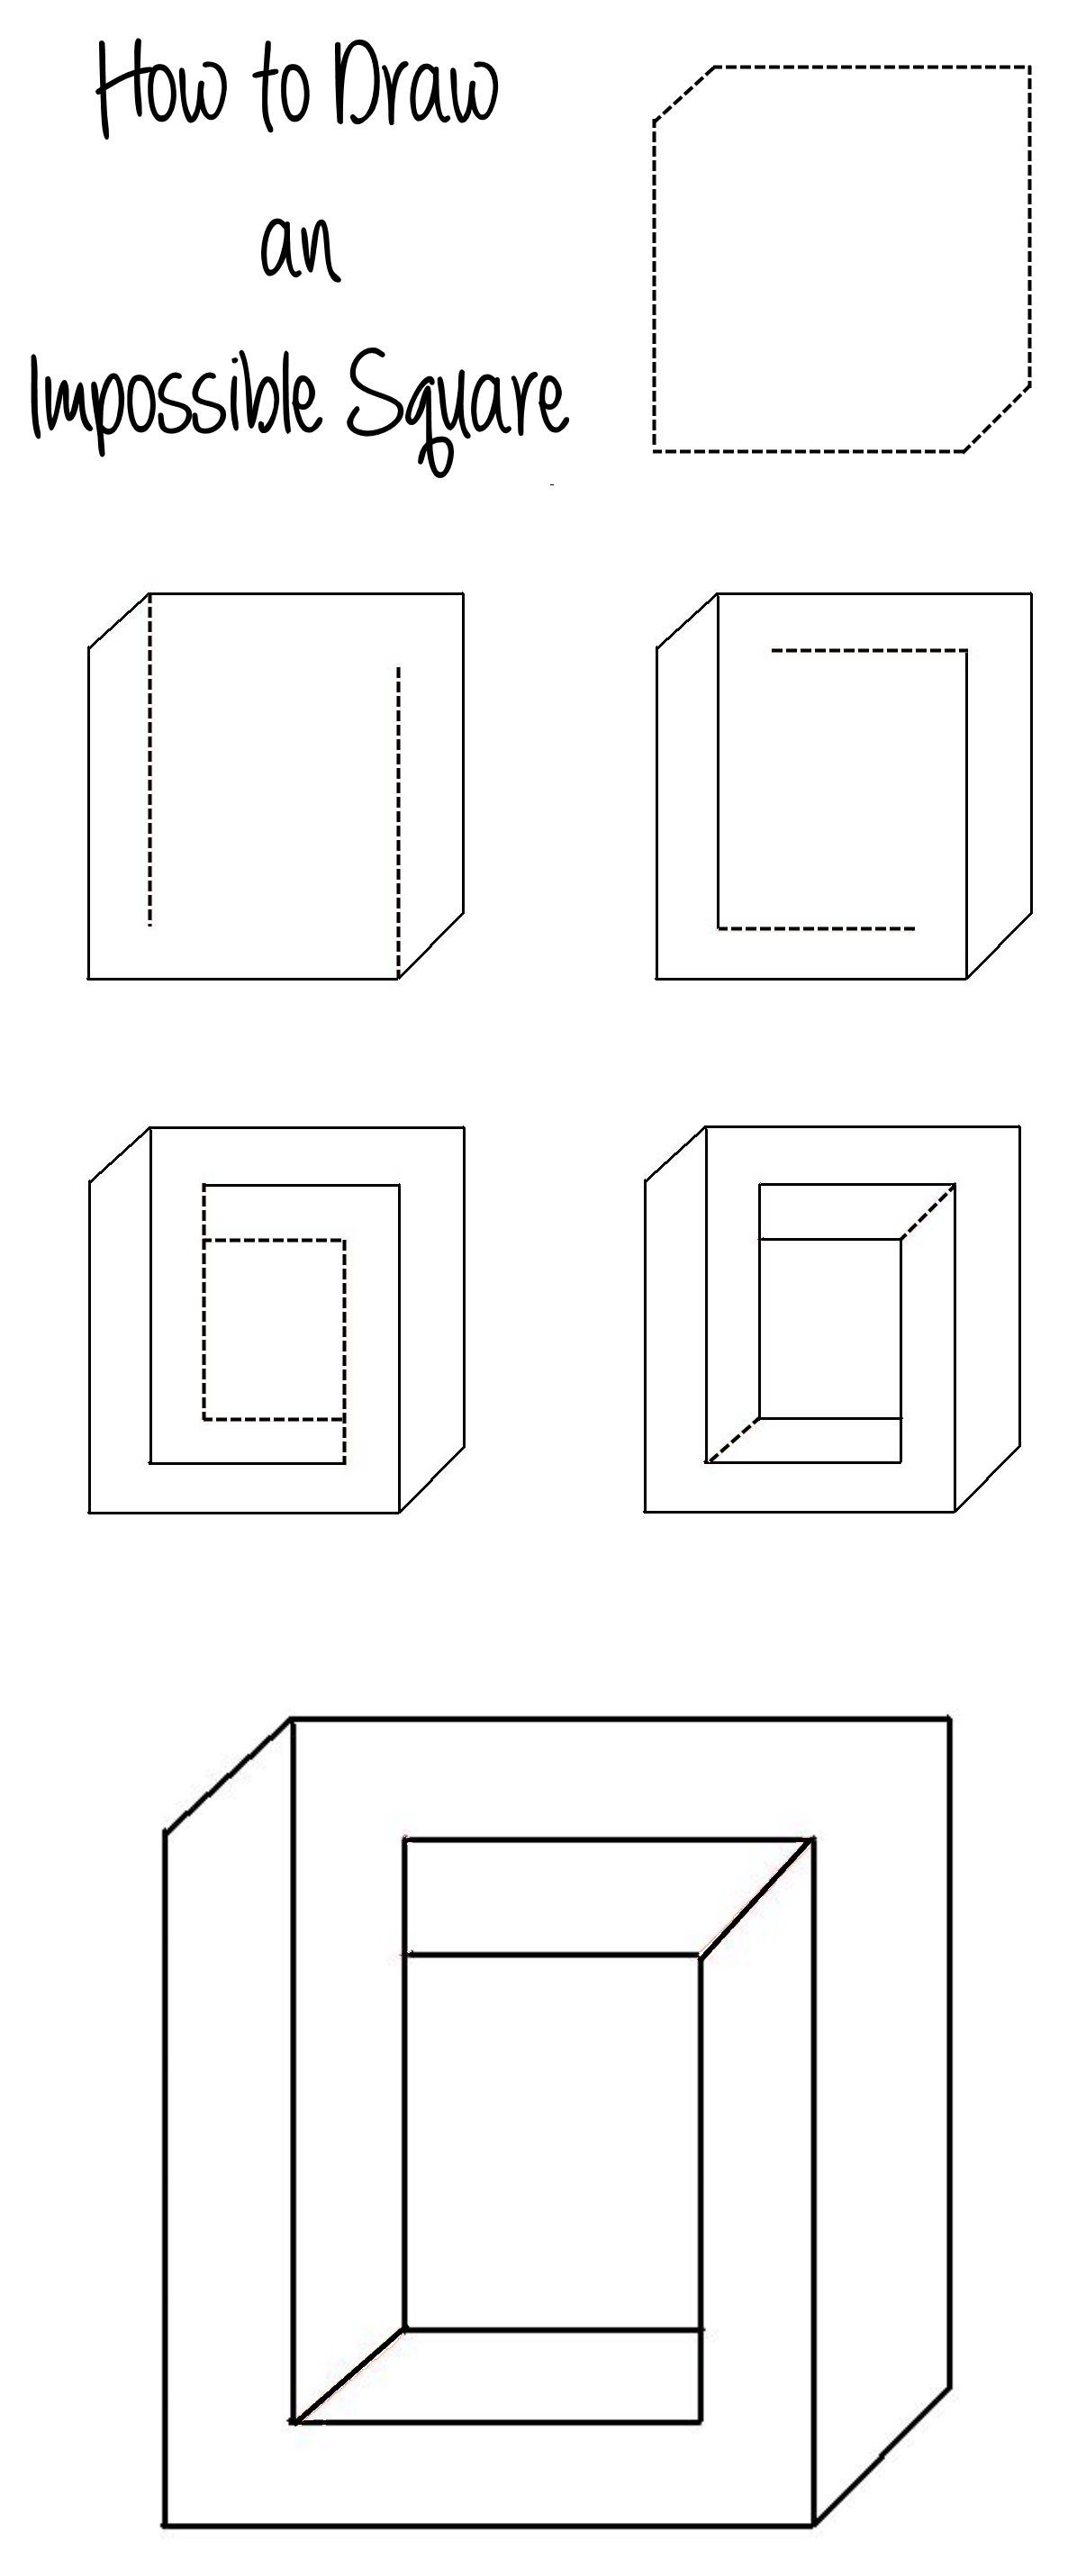 Drawn square Impossible How to Pin an